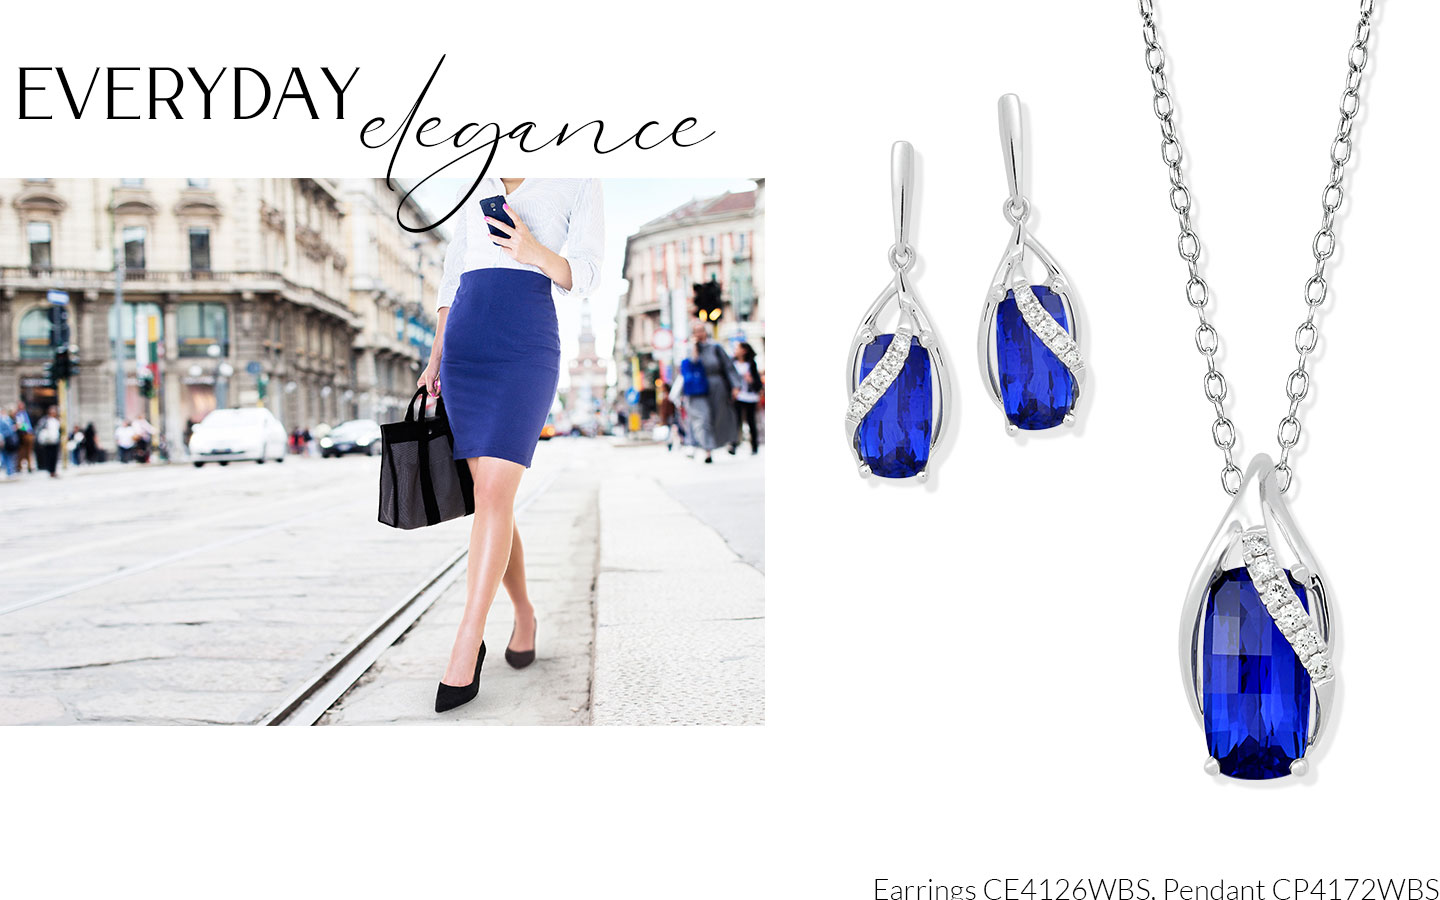 Busy Mom Every Day Elegance Featuring Earrings CE4126WBS and Pendant CP4172WBS